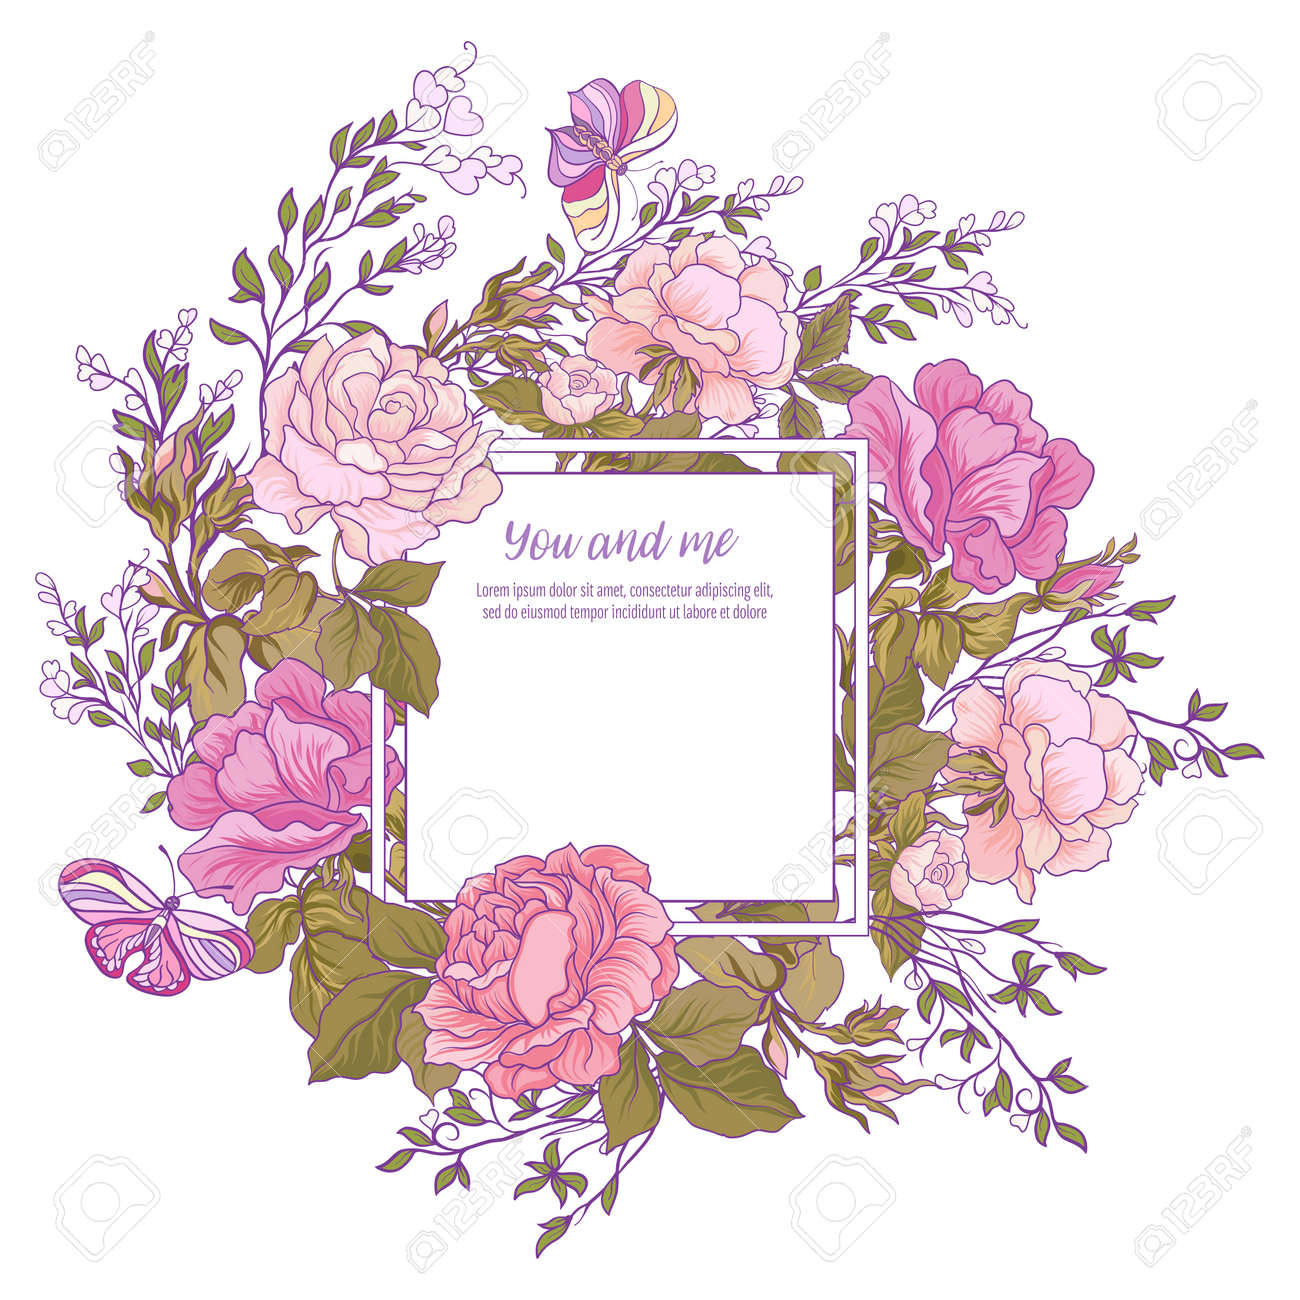 Rose Flower Background Good For Greeting Card Birthday Invitation Or Banner Stock